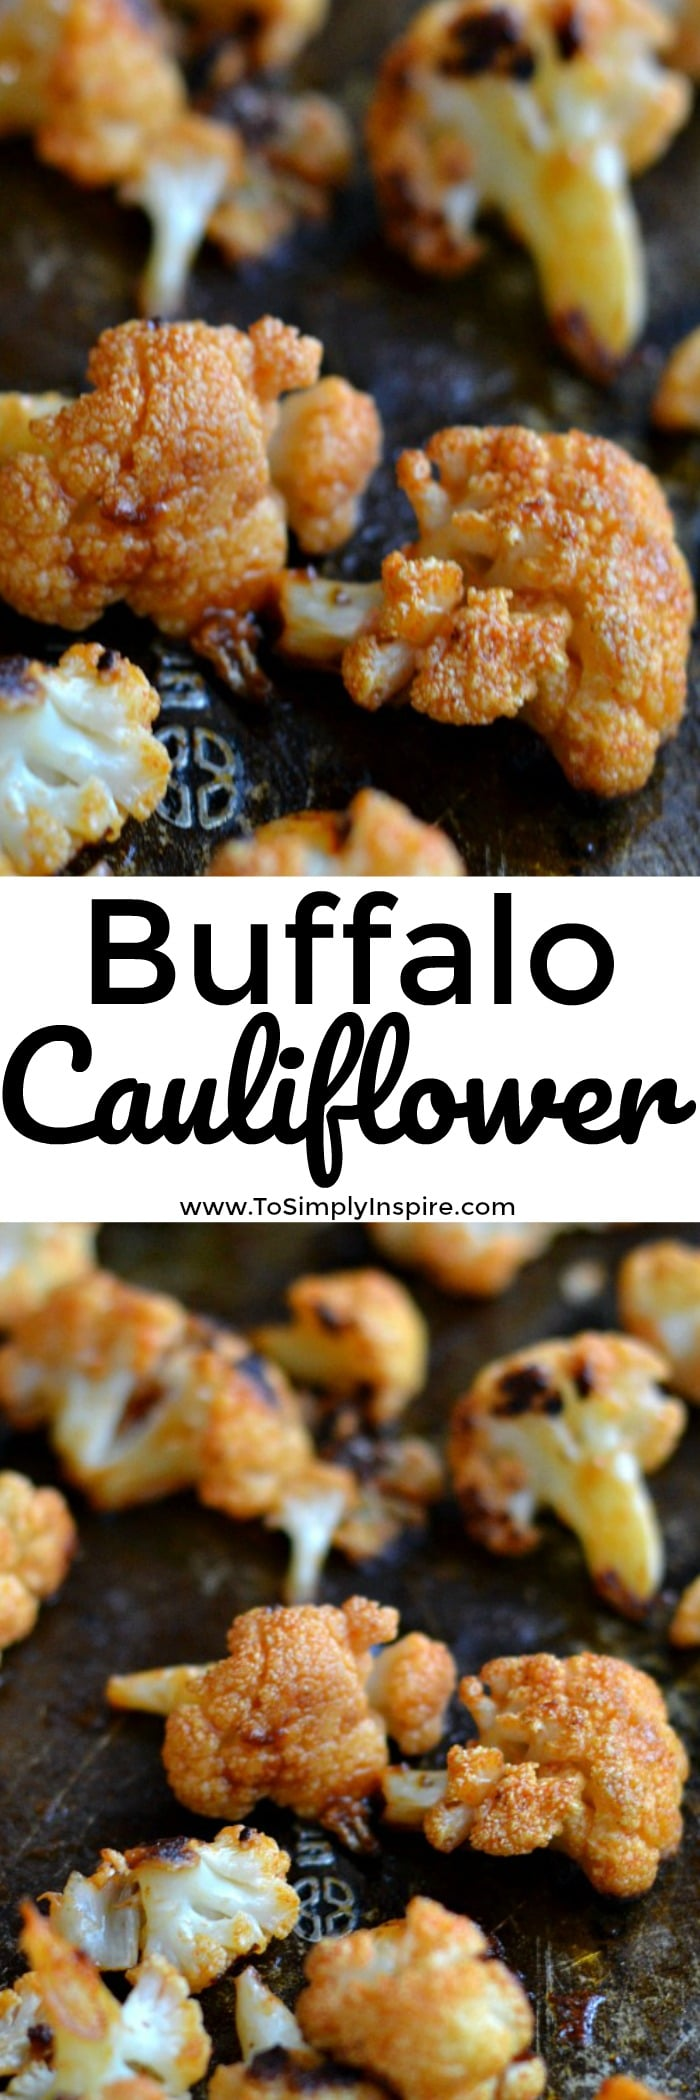 This oven-baked Buffalo Cauliflower is an easy, low-carb dish that are perfectly spiced. Serve them along side your favorite lean protein or as healthy appetizer with your favorite ranch or blue cheese dressing.